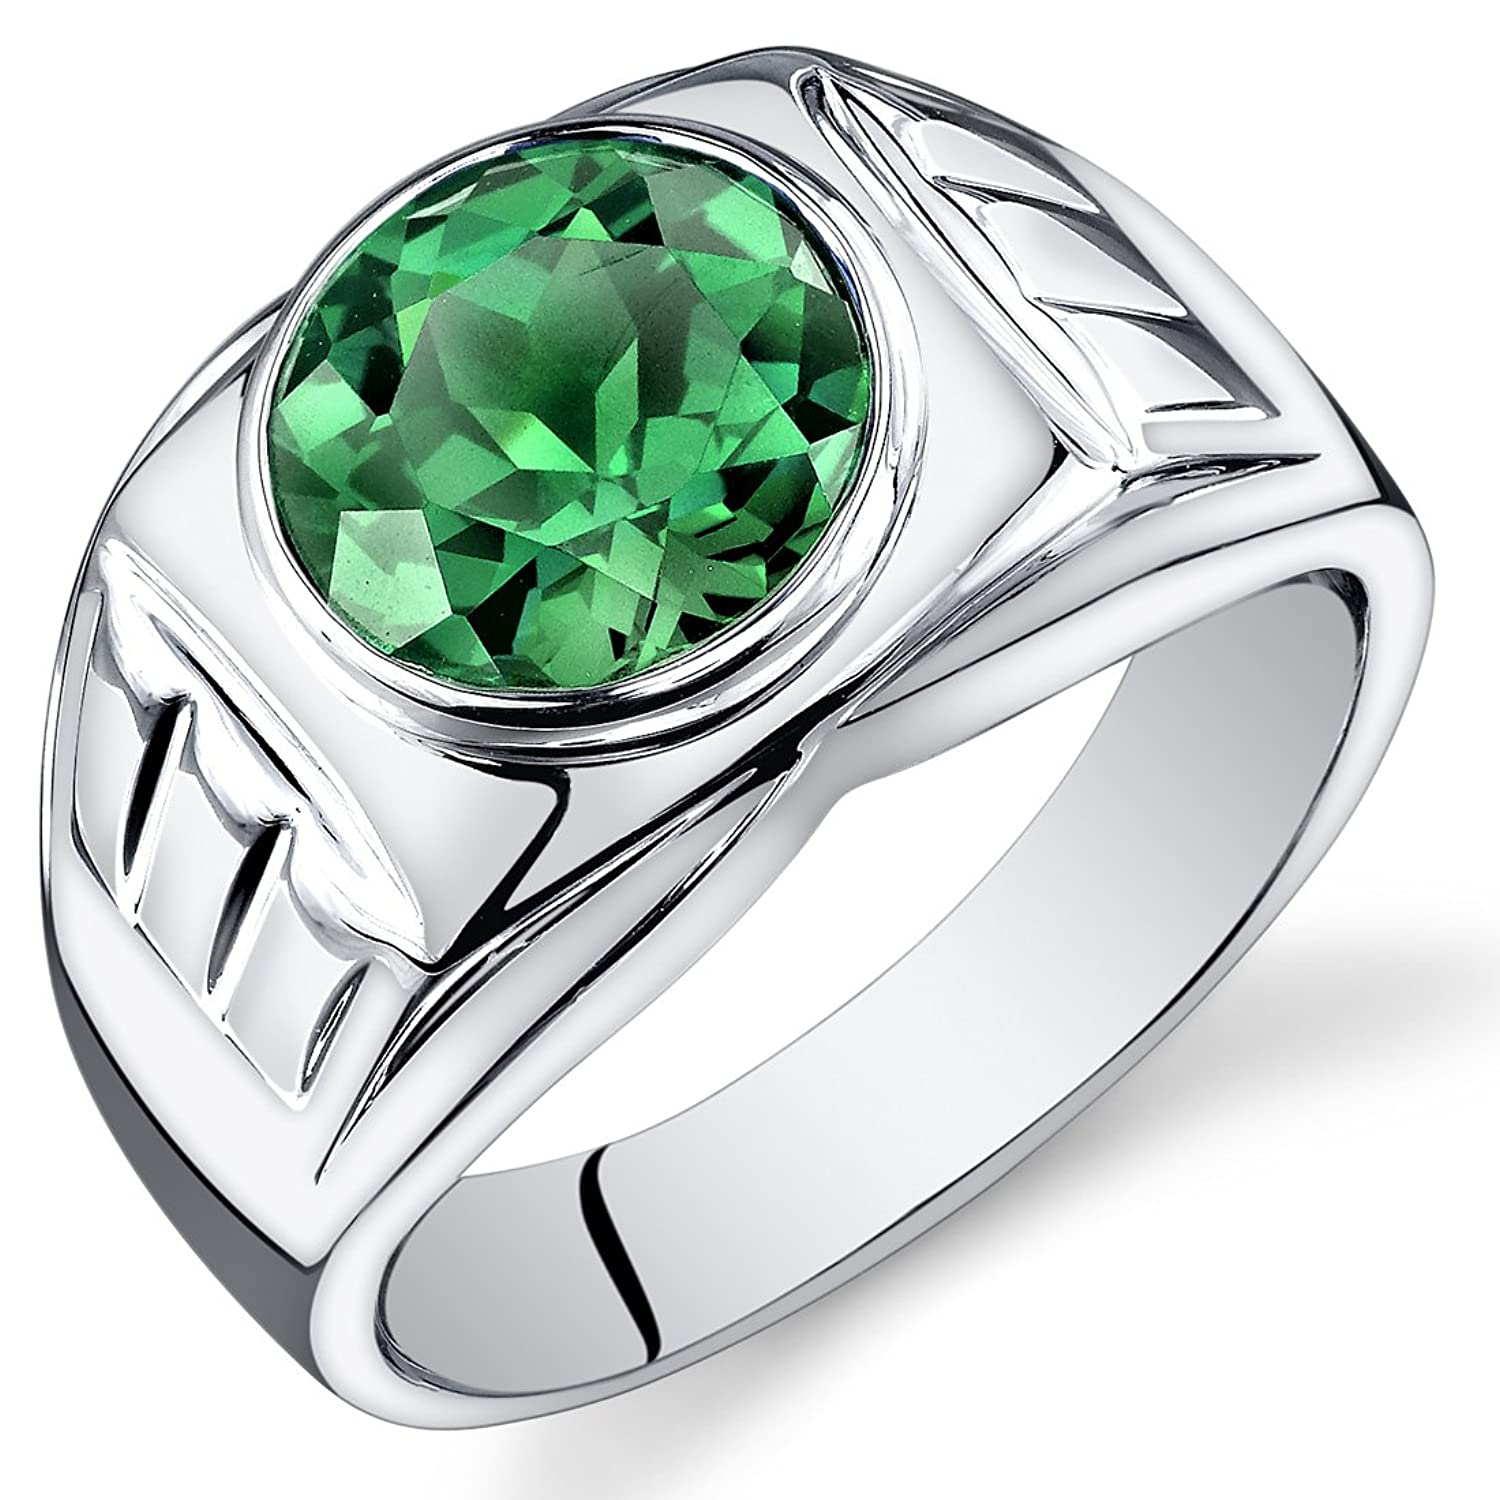 emerald rings differences between the real and synthetic. Amazon.com: Mens 4.50 Carats Simulated Emerald Ring Sterling Silver Sizes 8 To 13: Jewelry Rings Differences Between The Real And Synthetic